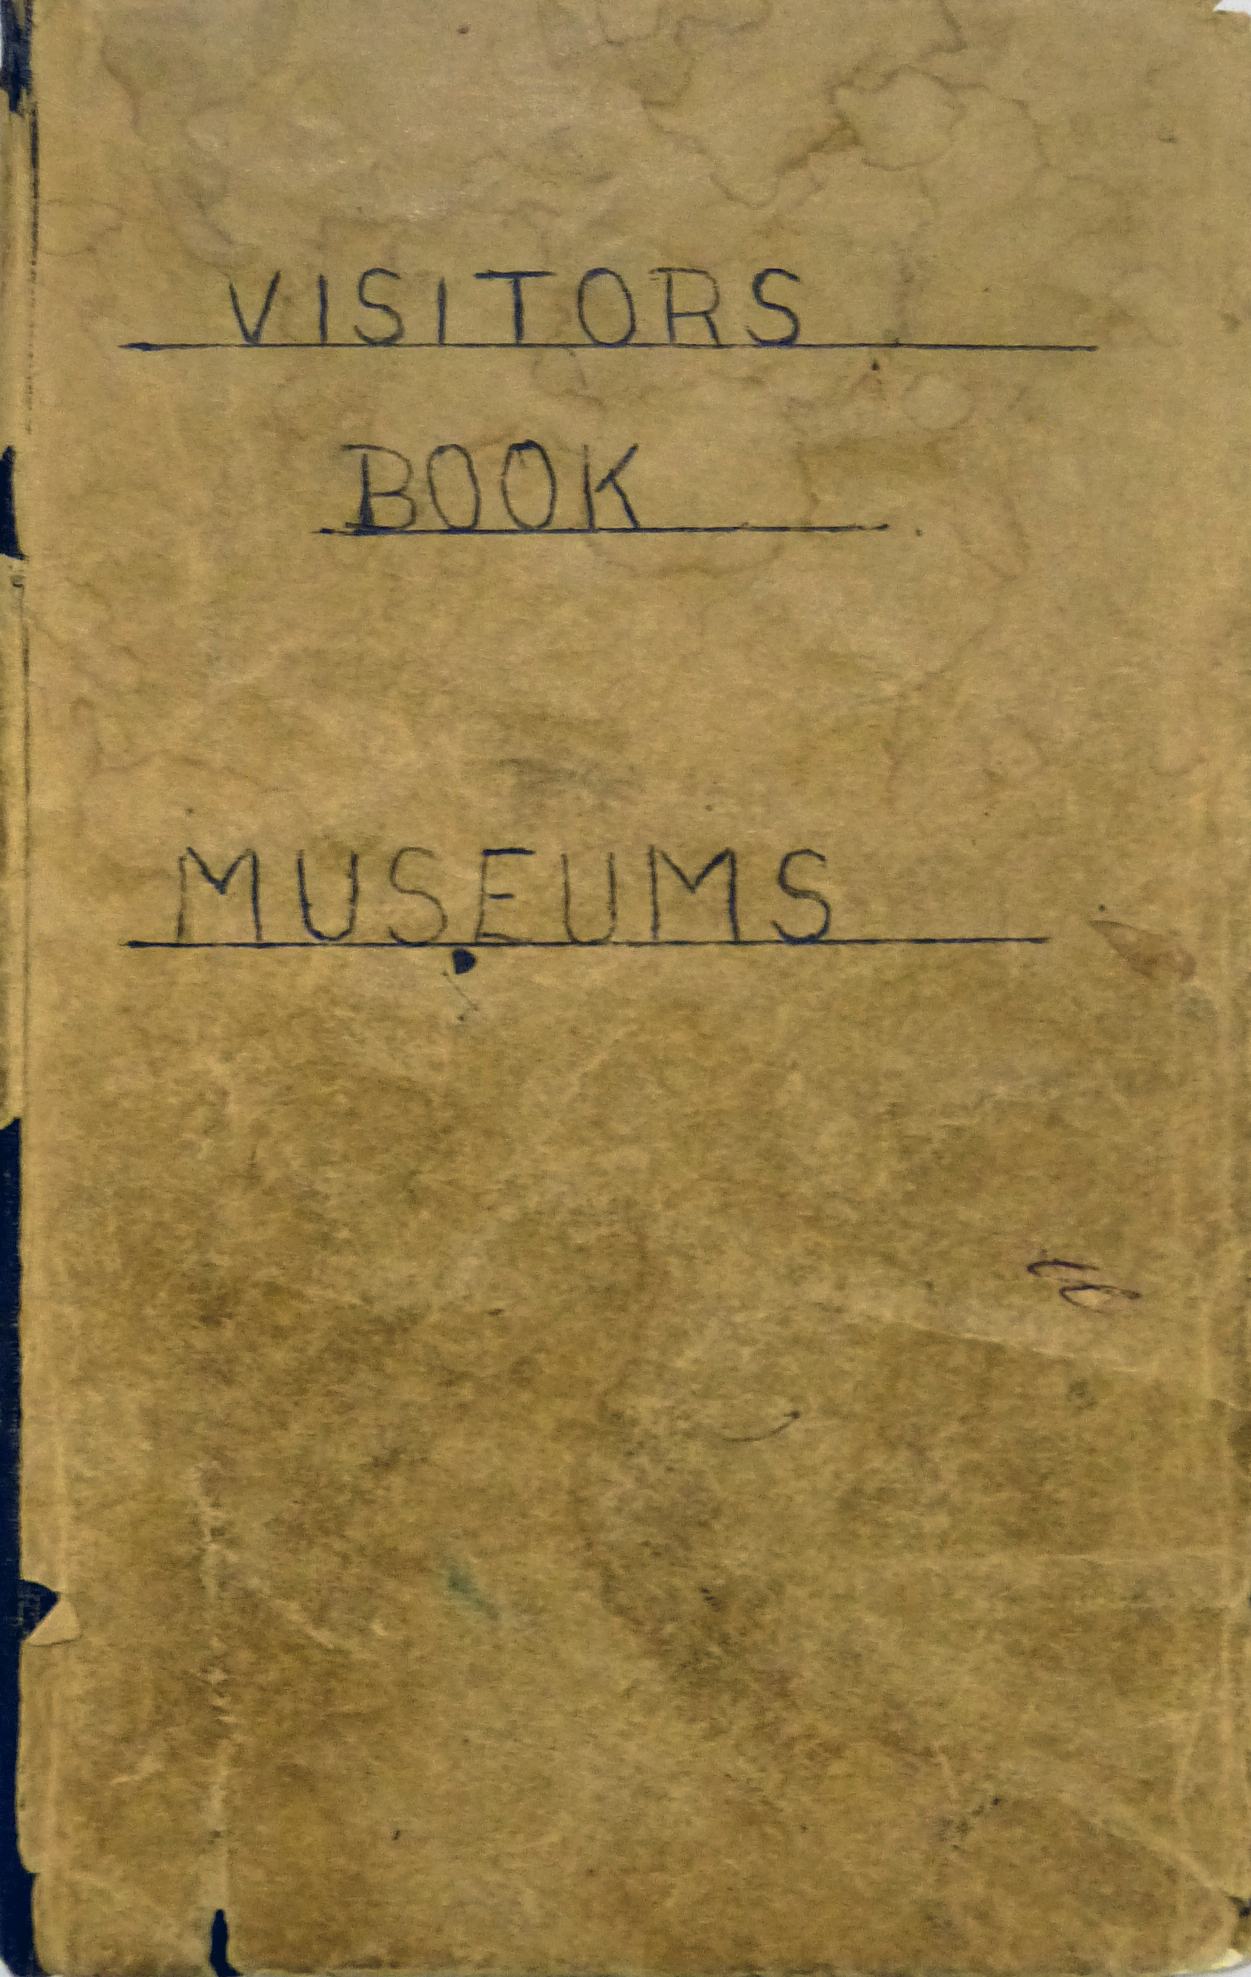 Museum visitors book outside cover